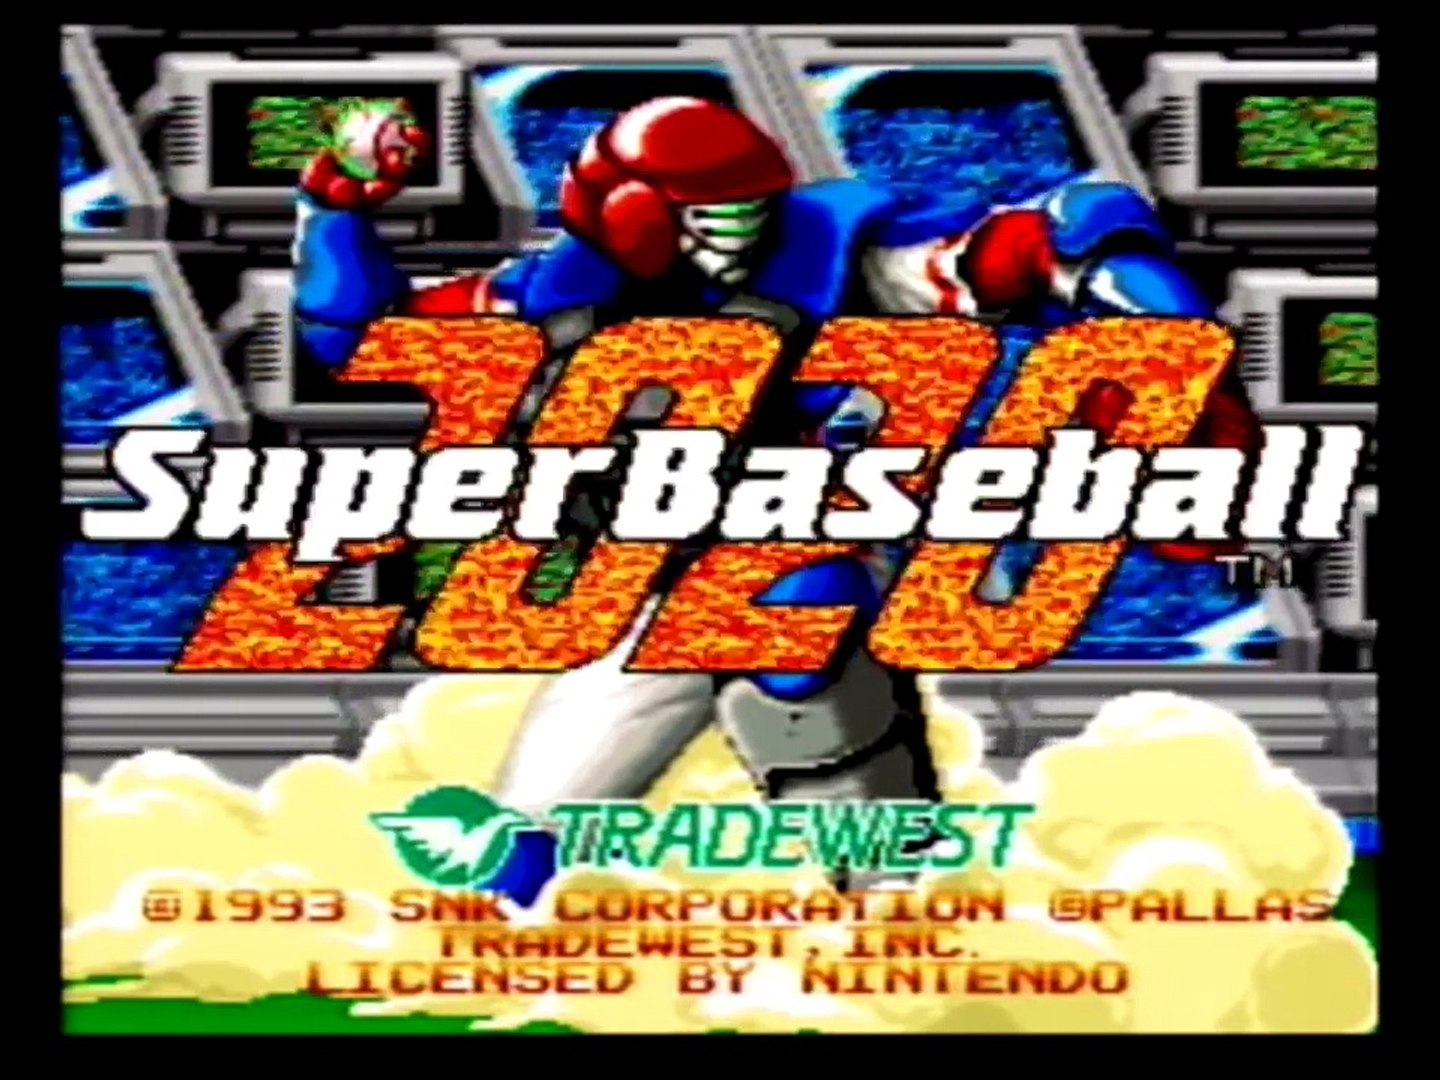 Super Baseball 2020 Review - Definitive 50 SNES Game #49